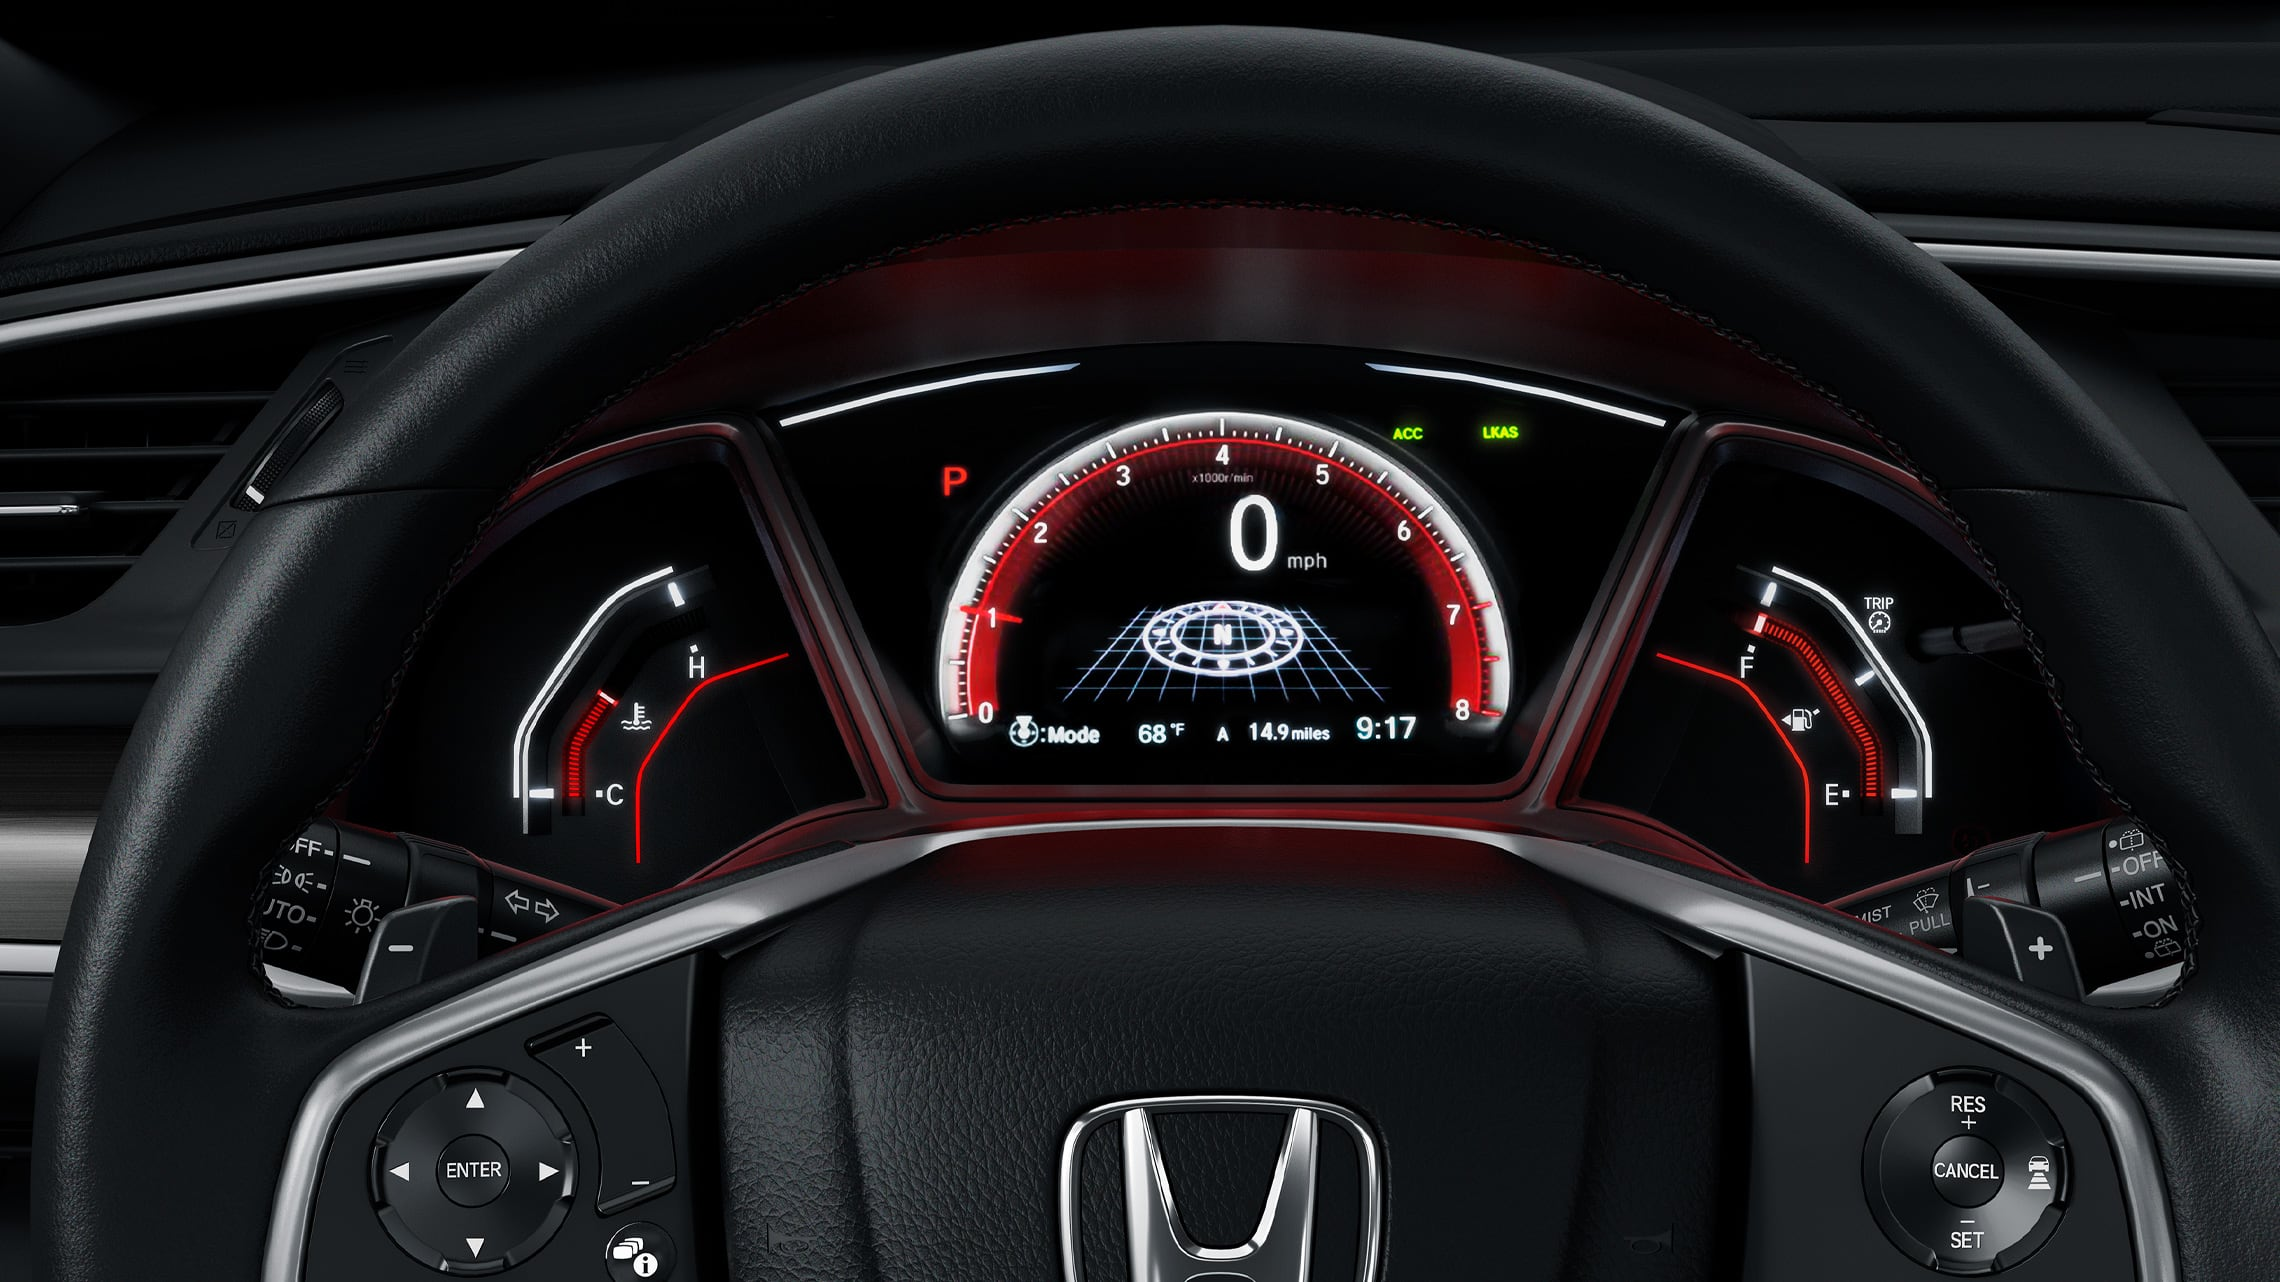 Interior view of steering wheel and dash in the 2021 Honda Civic Sport Touring Hatchback with Black Leather.